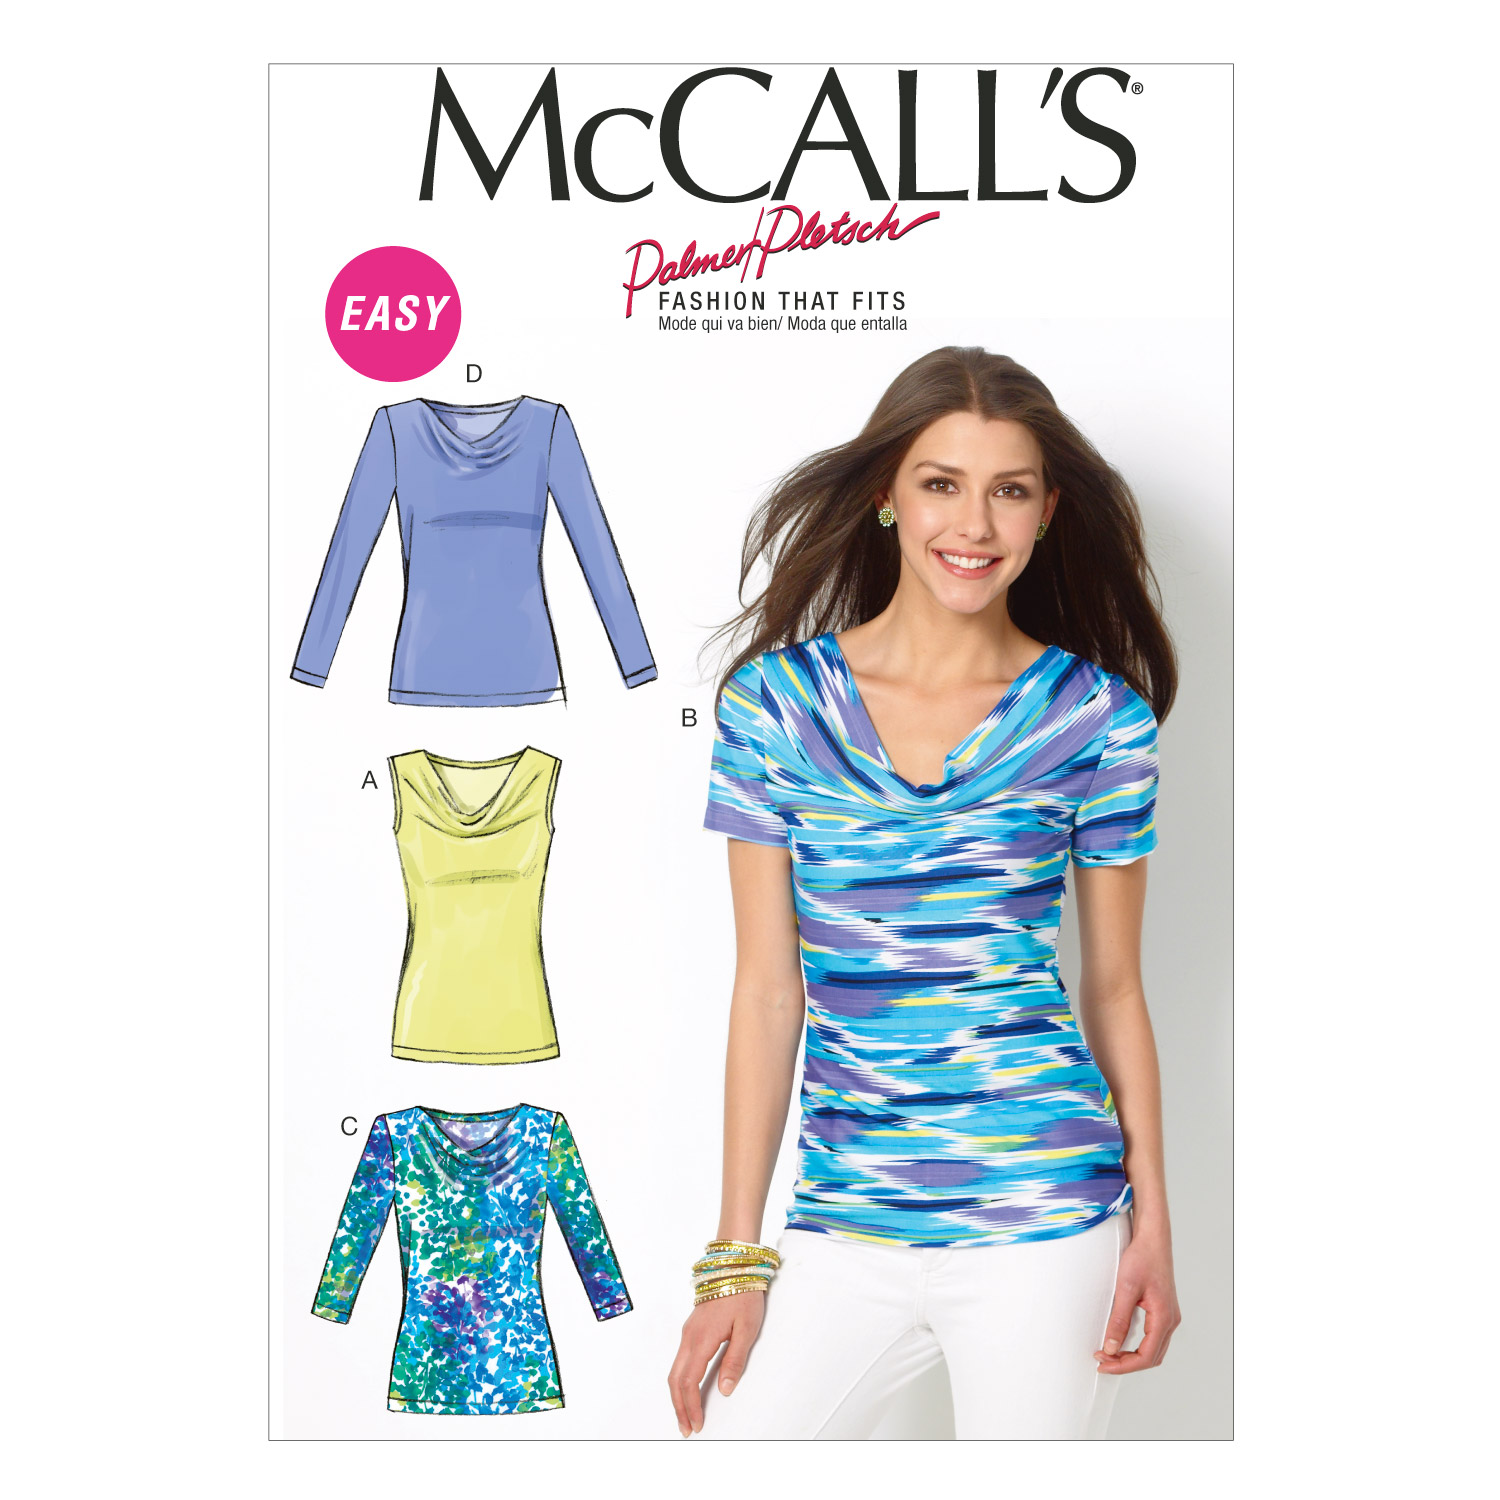 McCall's Misses' Tops Pattern M6963 Size B50 by Kwik Sew in USA